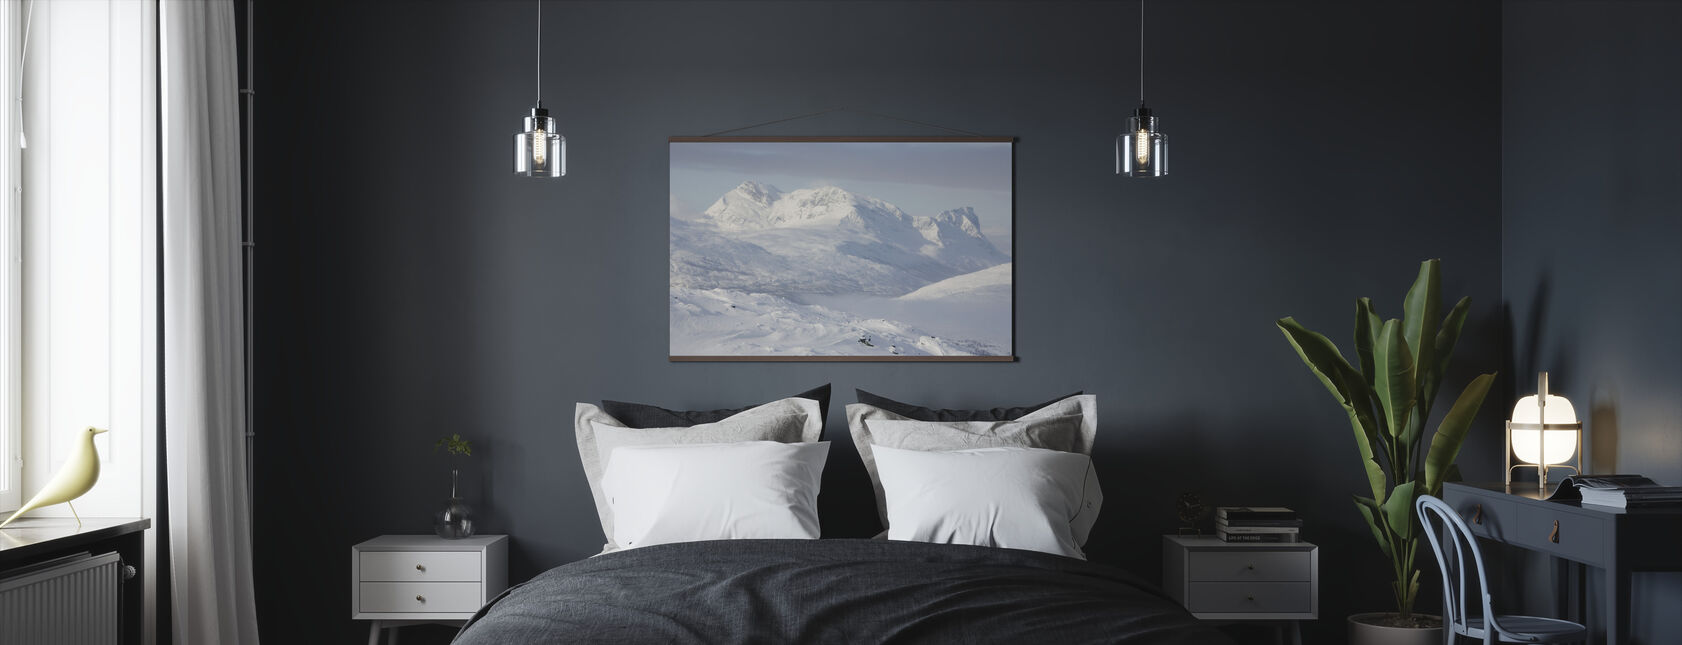 Snowy Mountains in Lapland, Sweden - Poster - Bedroom